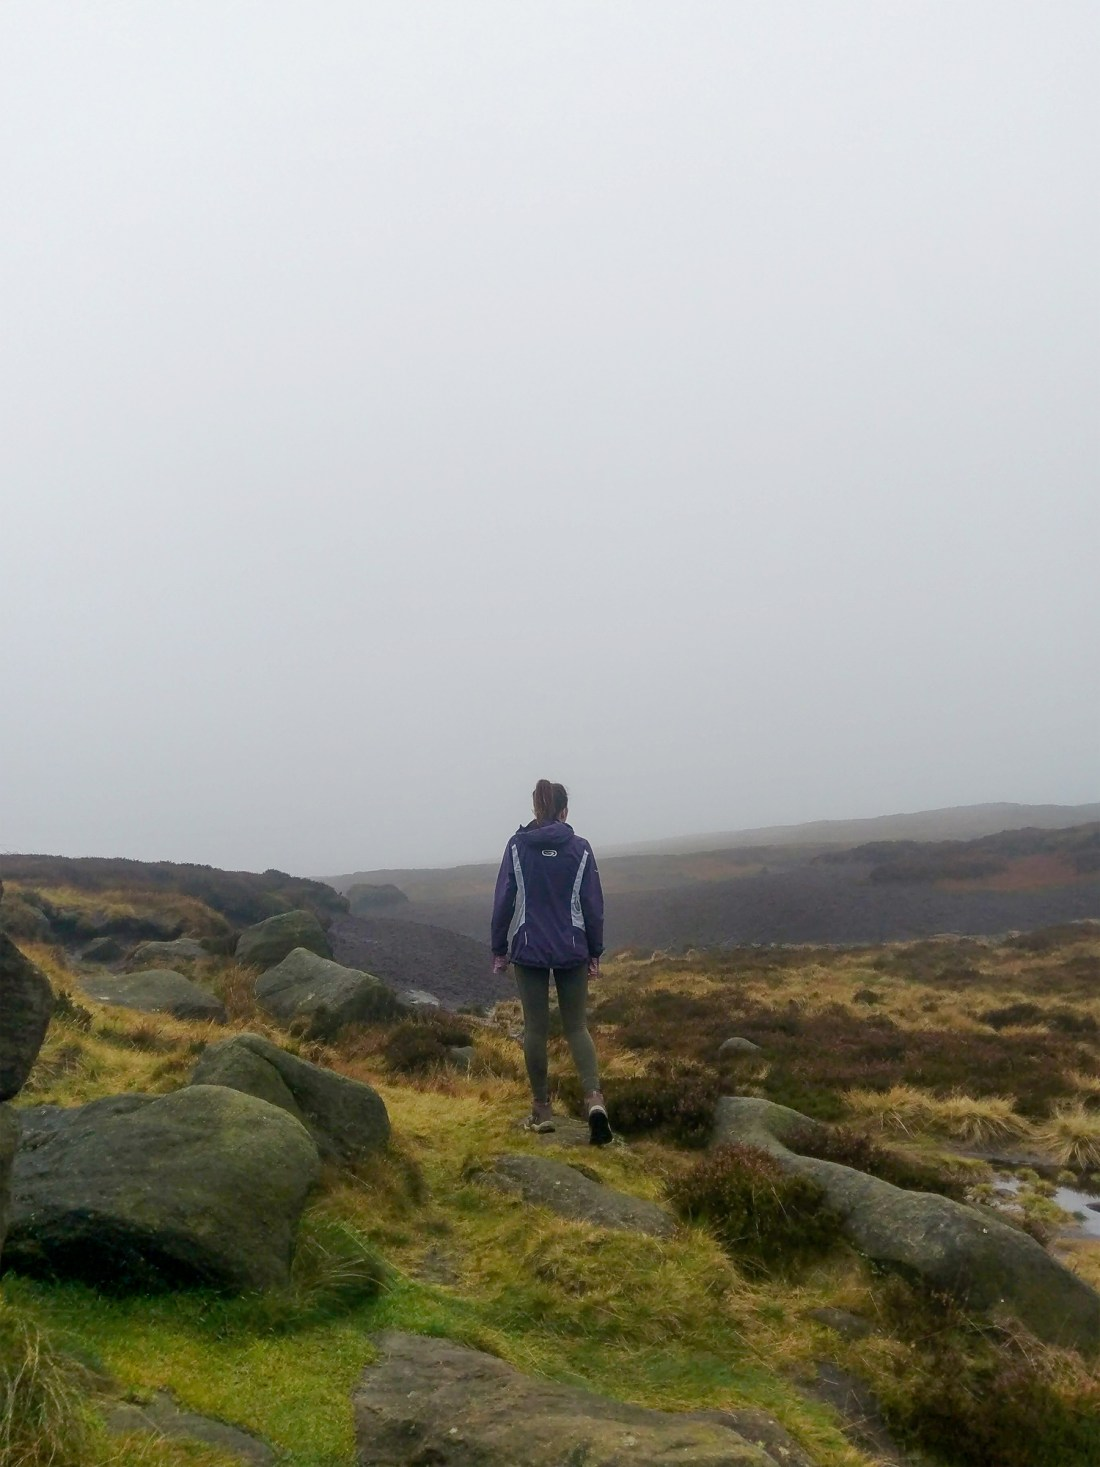 Climbing the peak of Kinder Scout, Peak District